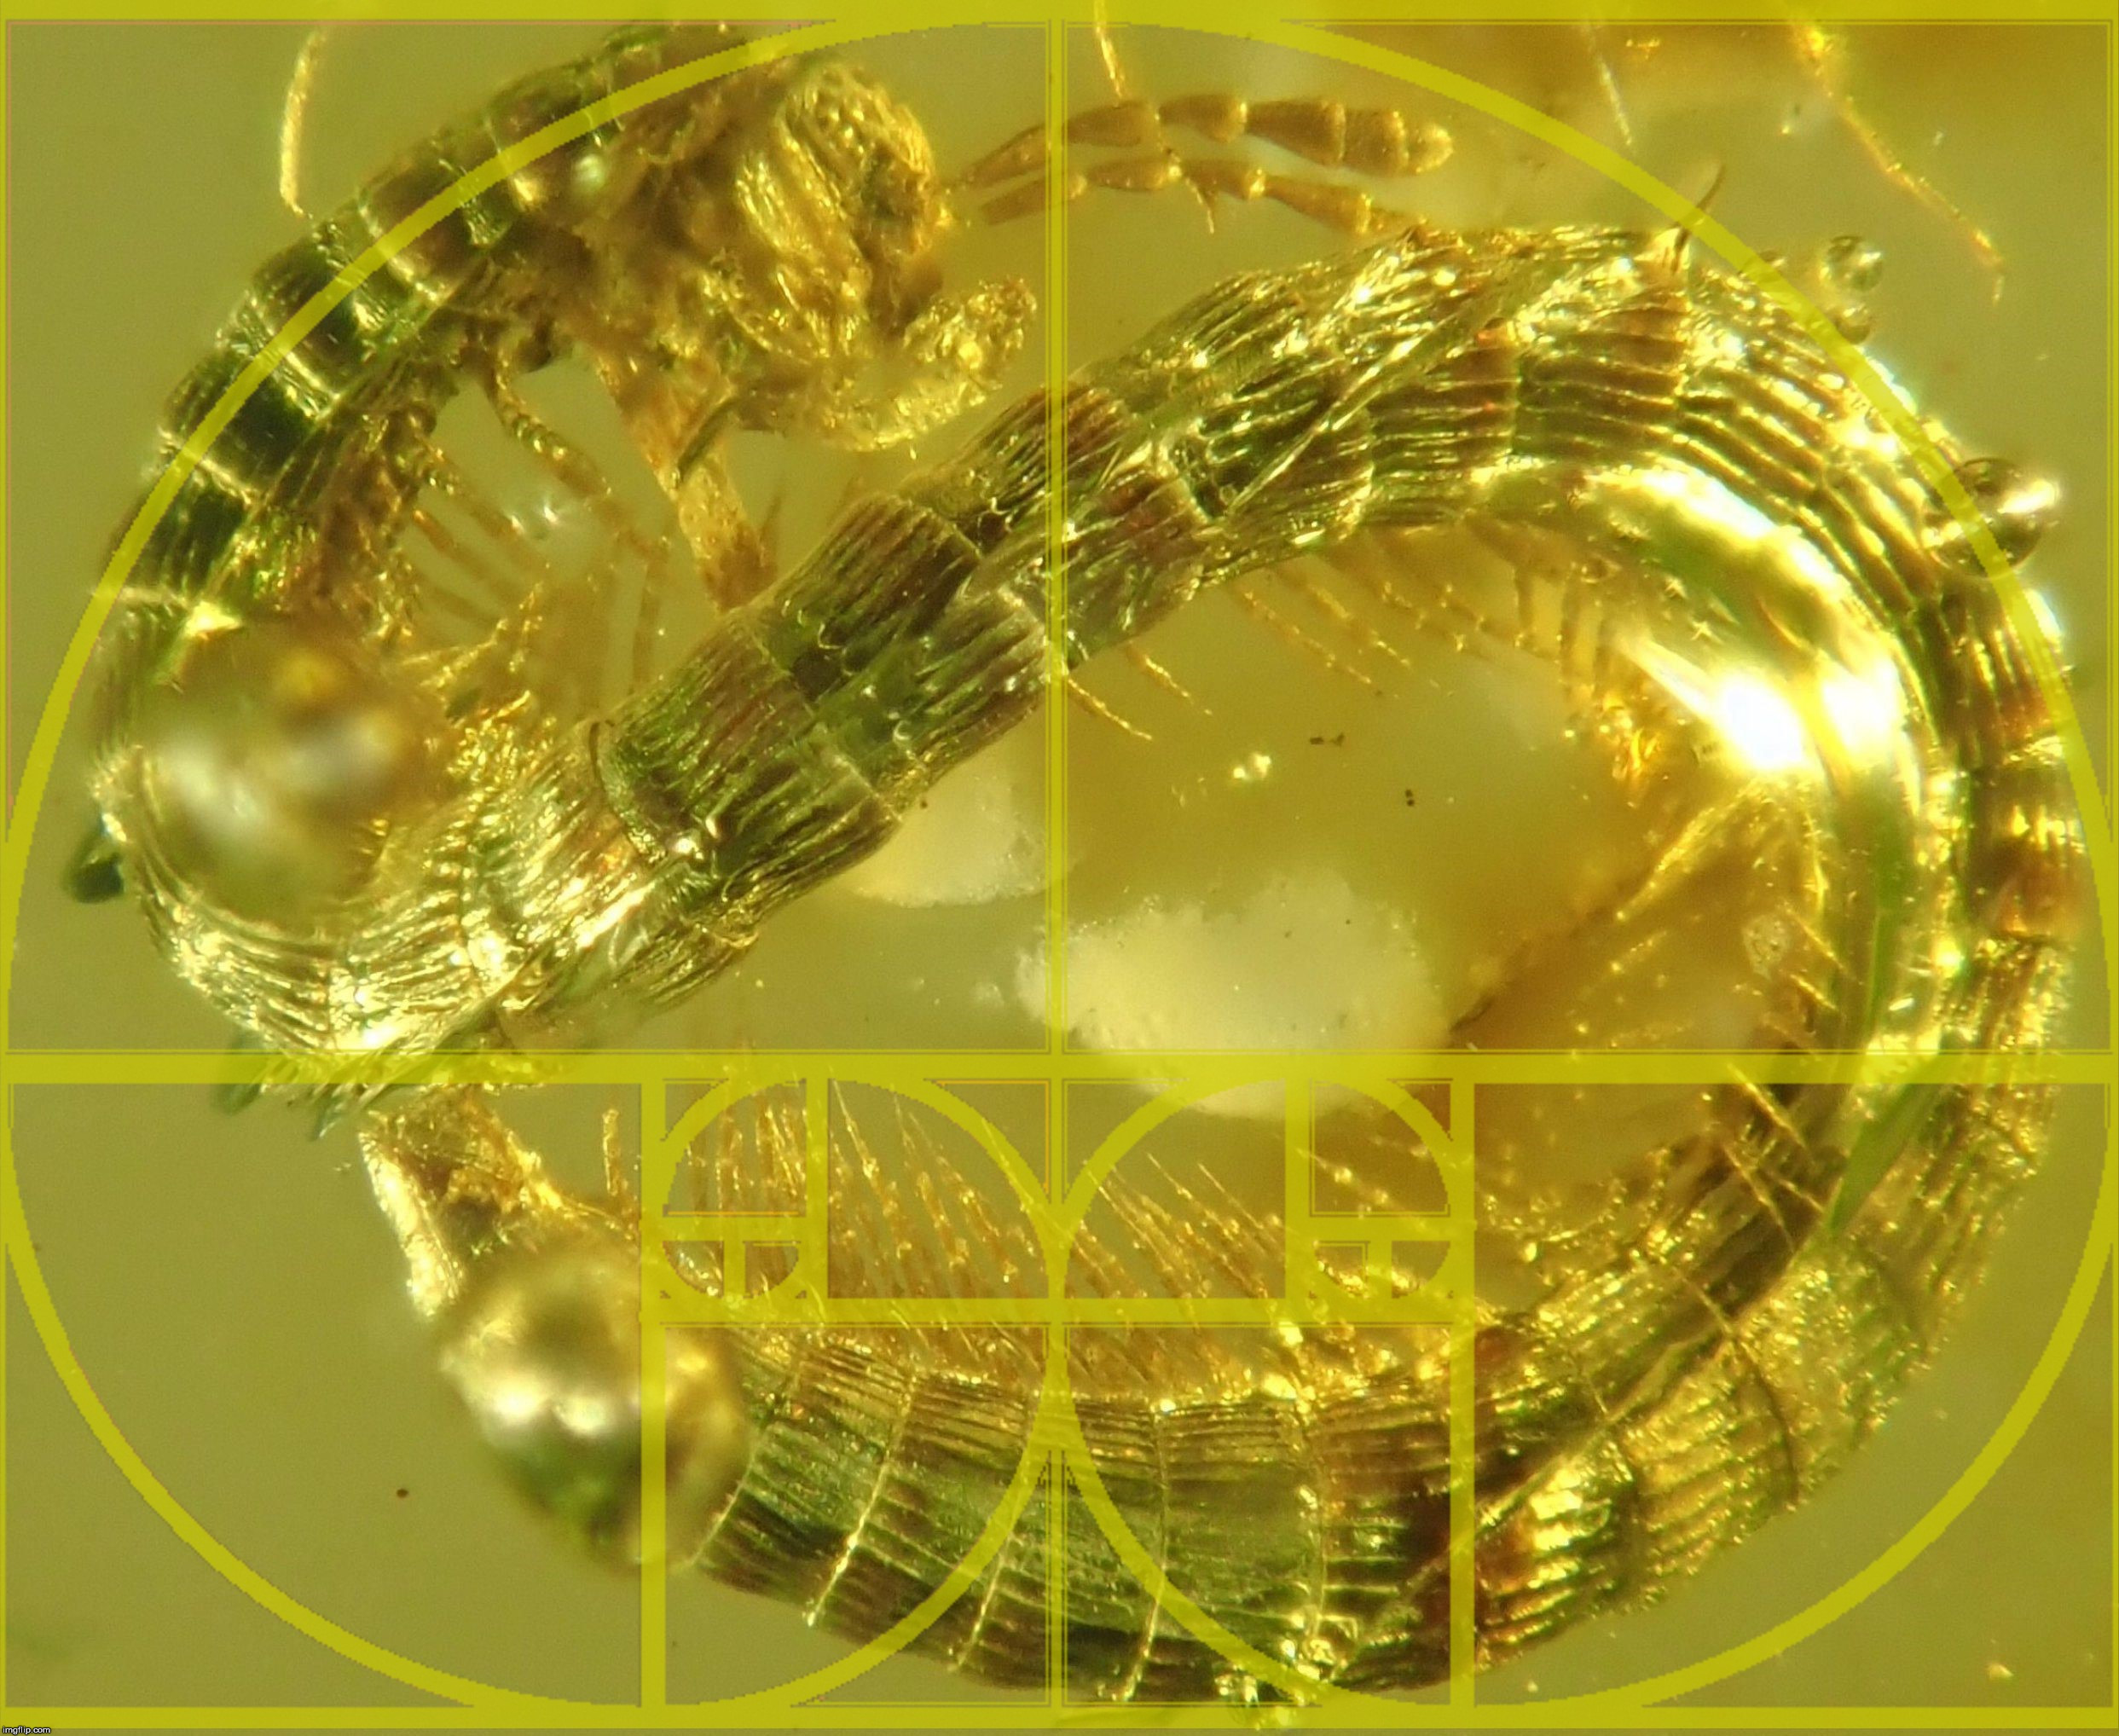 A millipede trapped in translucent amber.  207 207 0 in R.G.B. with 62% sticker opacity. | image tagged in the golden ratio,nature,amber,visible,light,spectrum | made w/ Imgflip meme maker